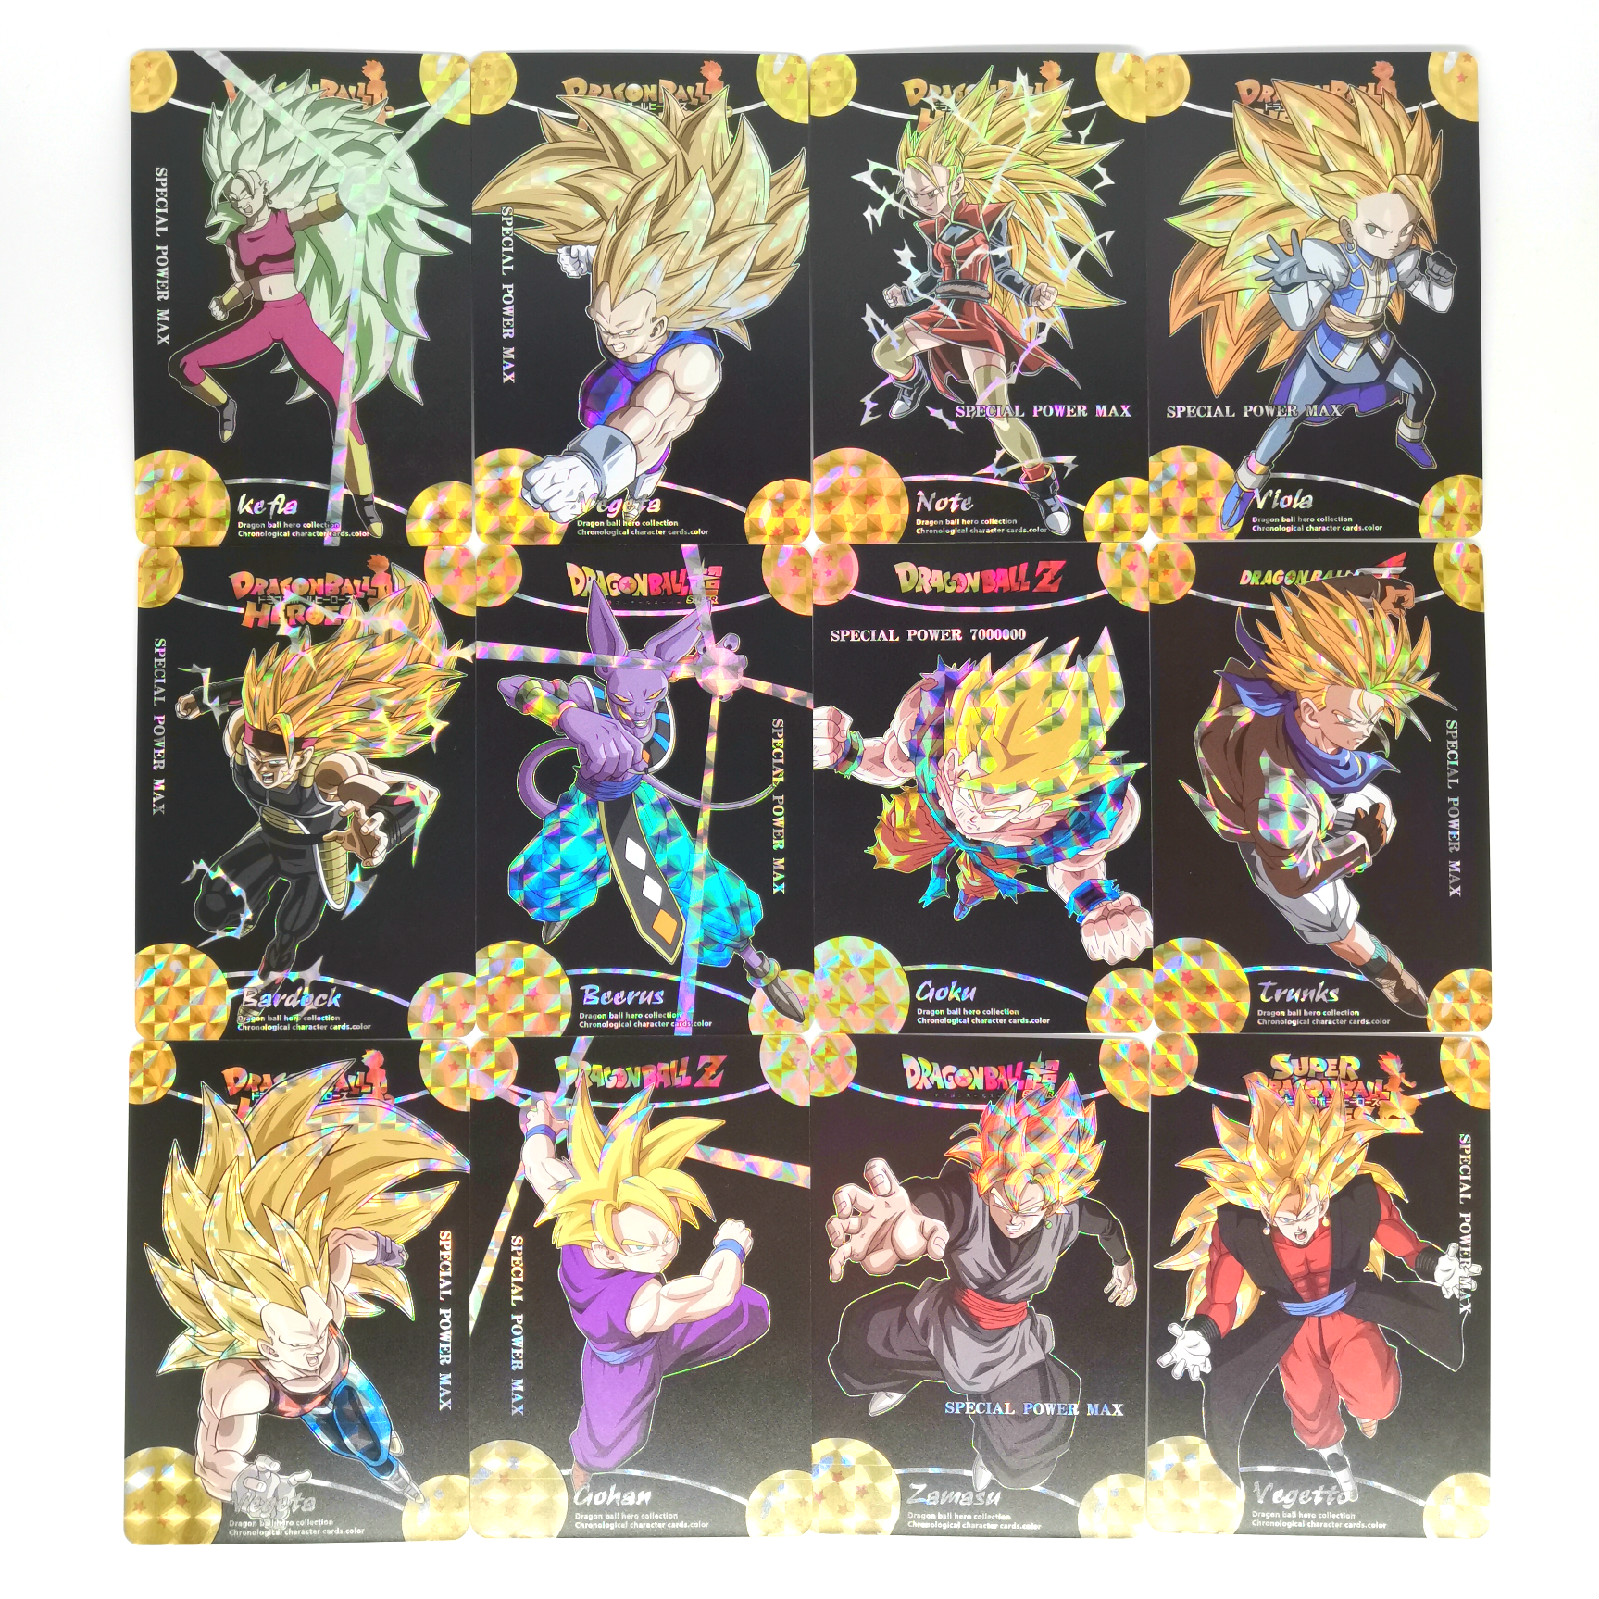 52pcs Super Dragon Ball Z Black Face Saiyan 3 Heroes Battle Card Ultra Instinct Goku Vegeta Game Collection Cards